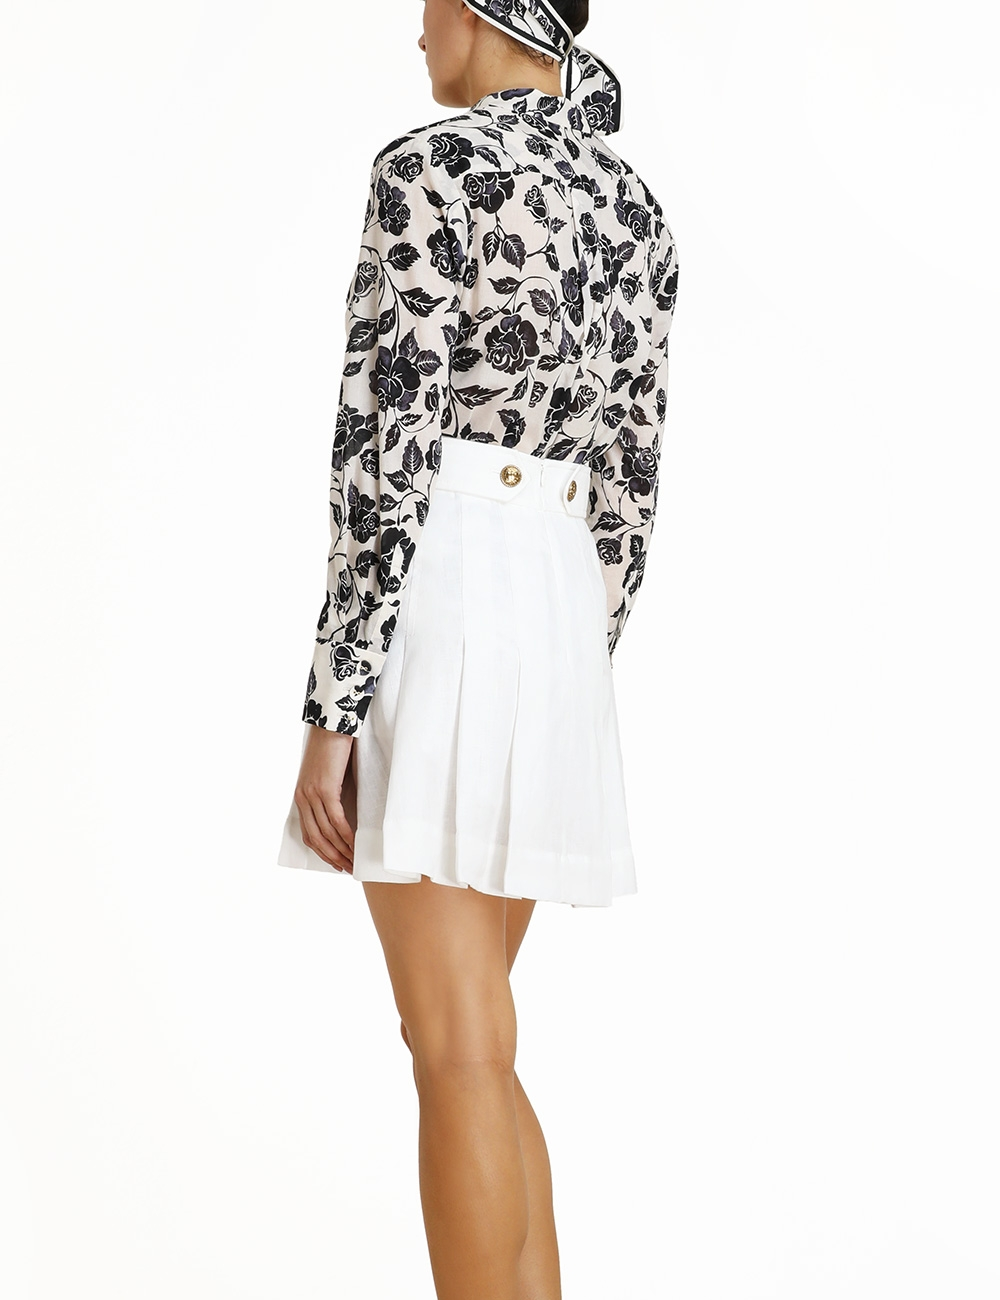 The Lovestruck Short Skirt